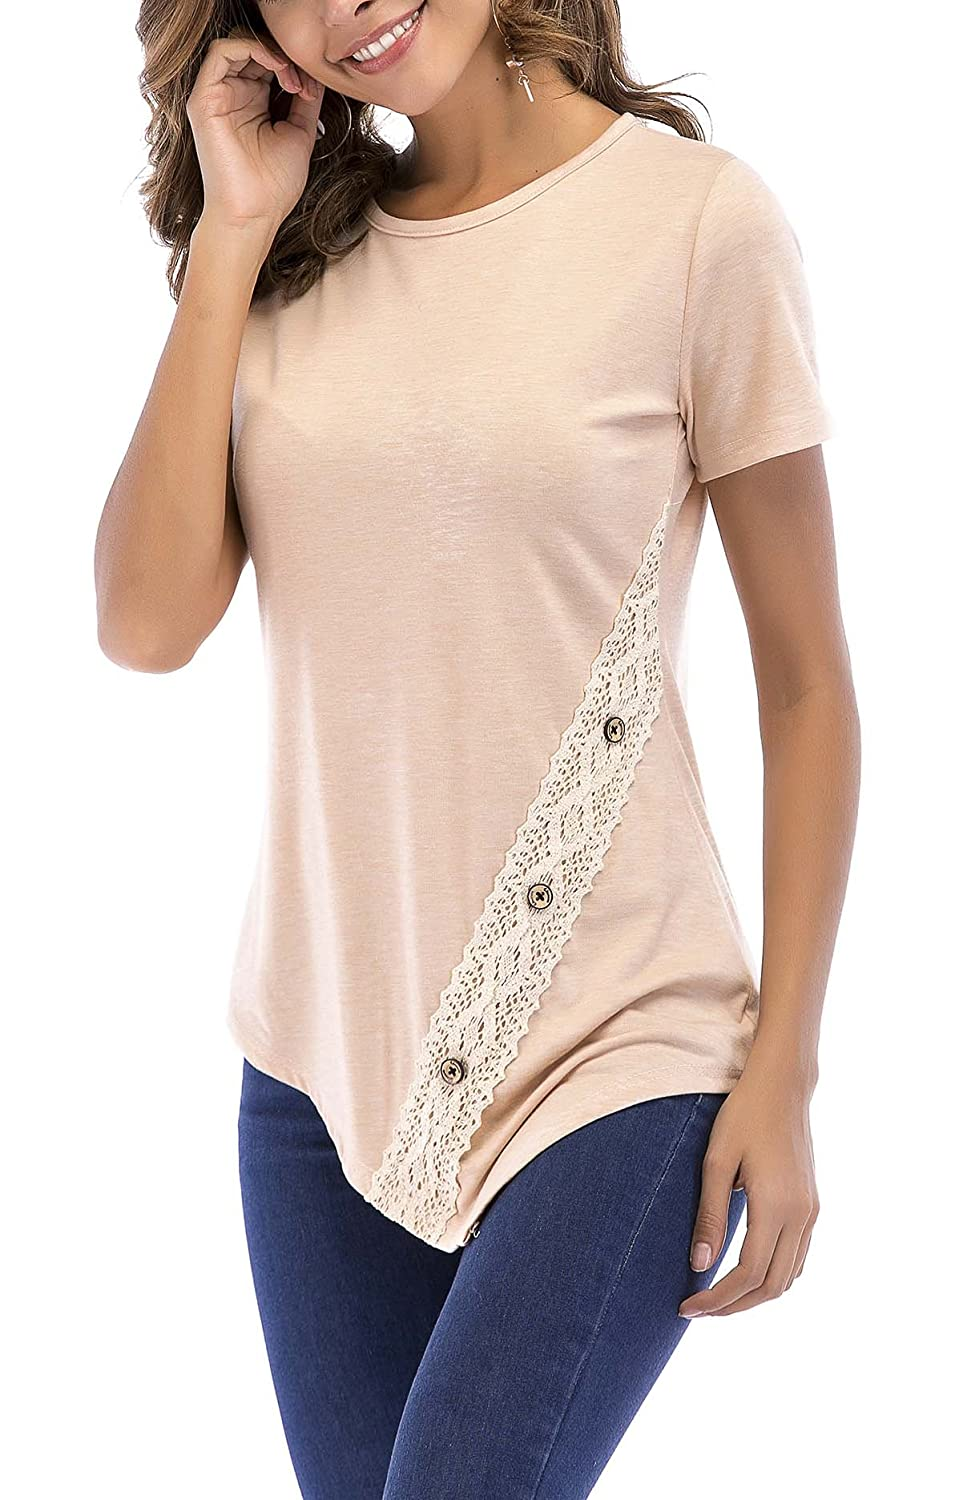 99e26ae47df 8sanlione Womens Short Sleeve Casual Slim Crew Neck Tunic Tops T-Shirt with Lace  Buttons at Amazon Women's Clothing store: